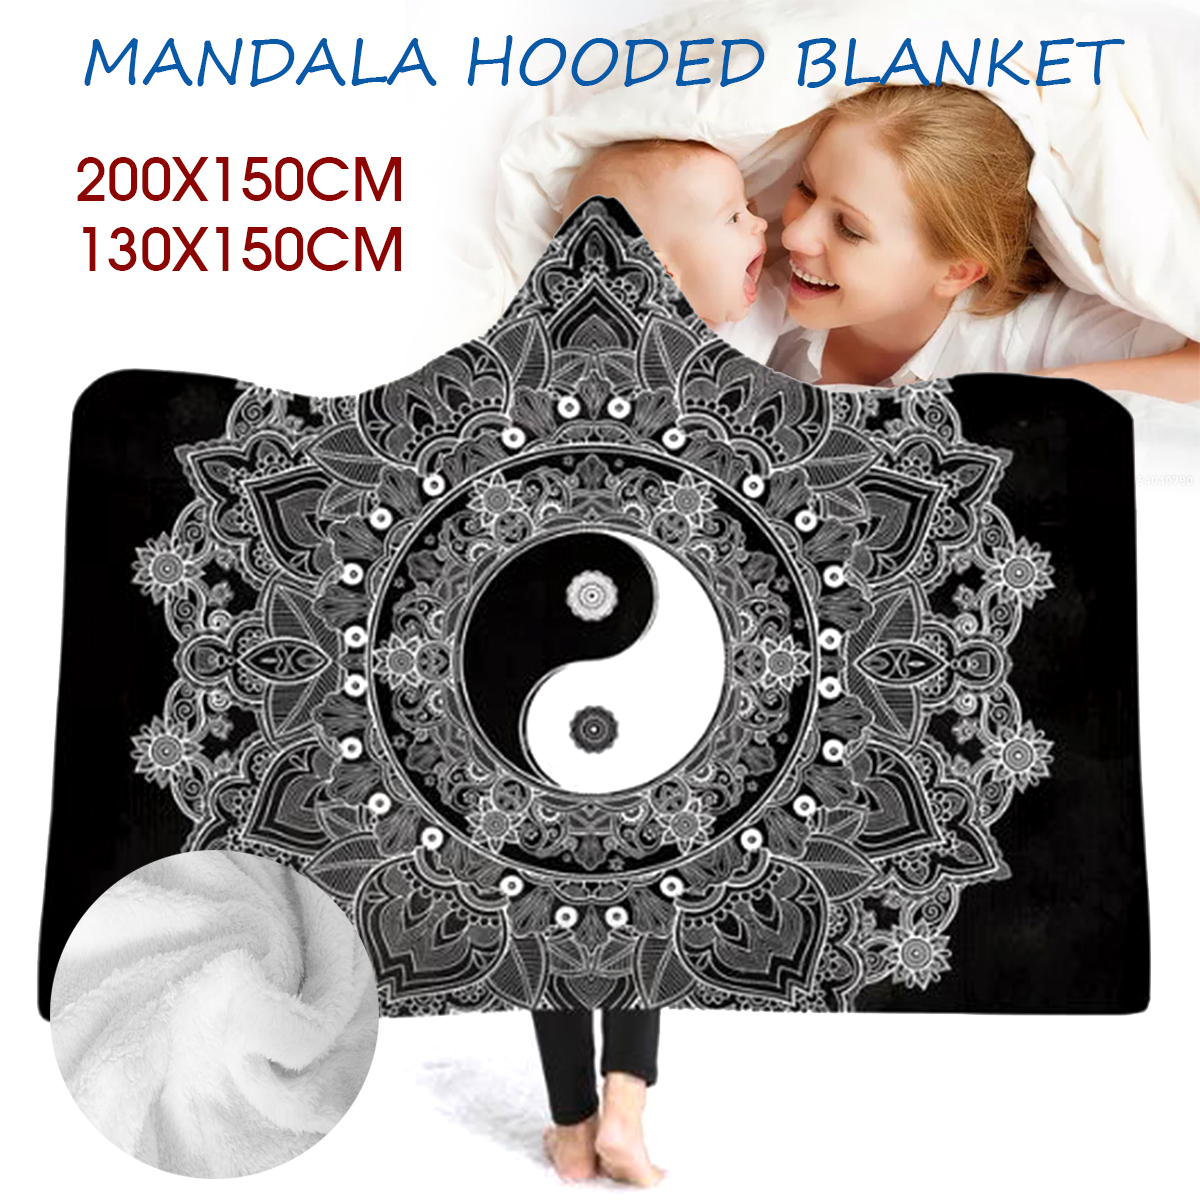 Boho Mandala Plush Wearable Hooded Blankets 2 Layer Blankets Cloak Throw Blankets